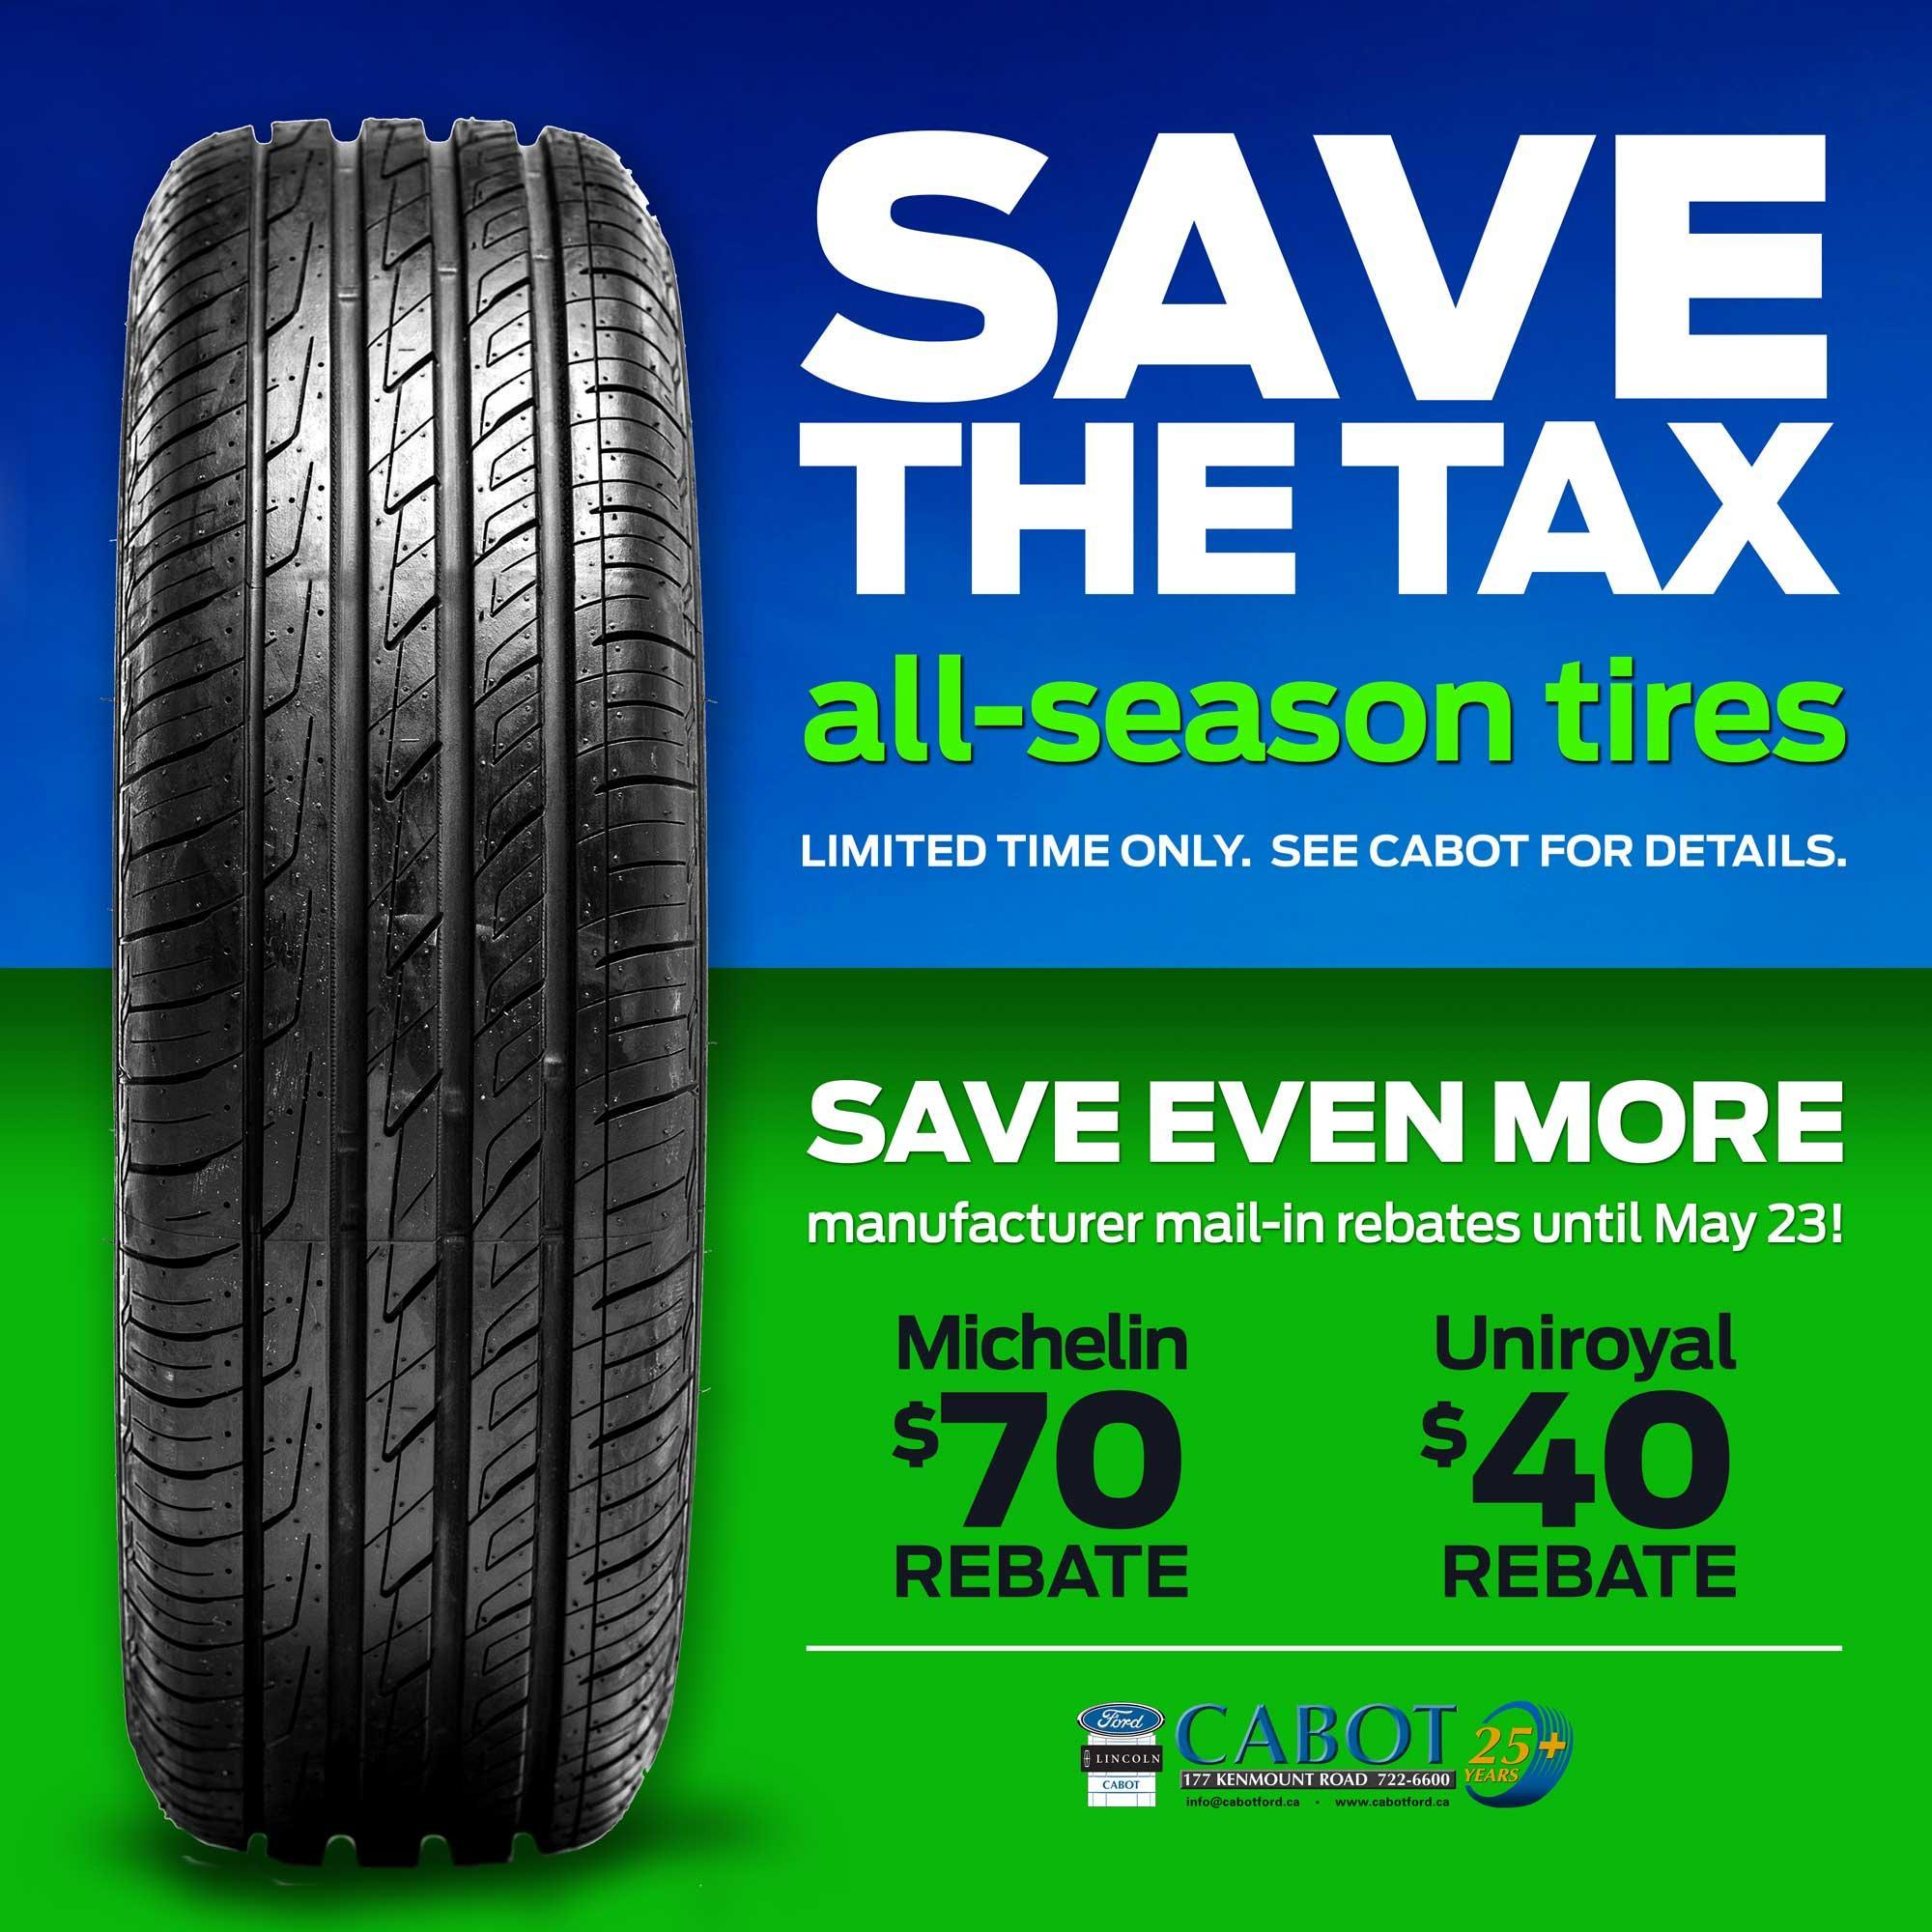 Ford All-Season Tires image